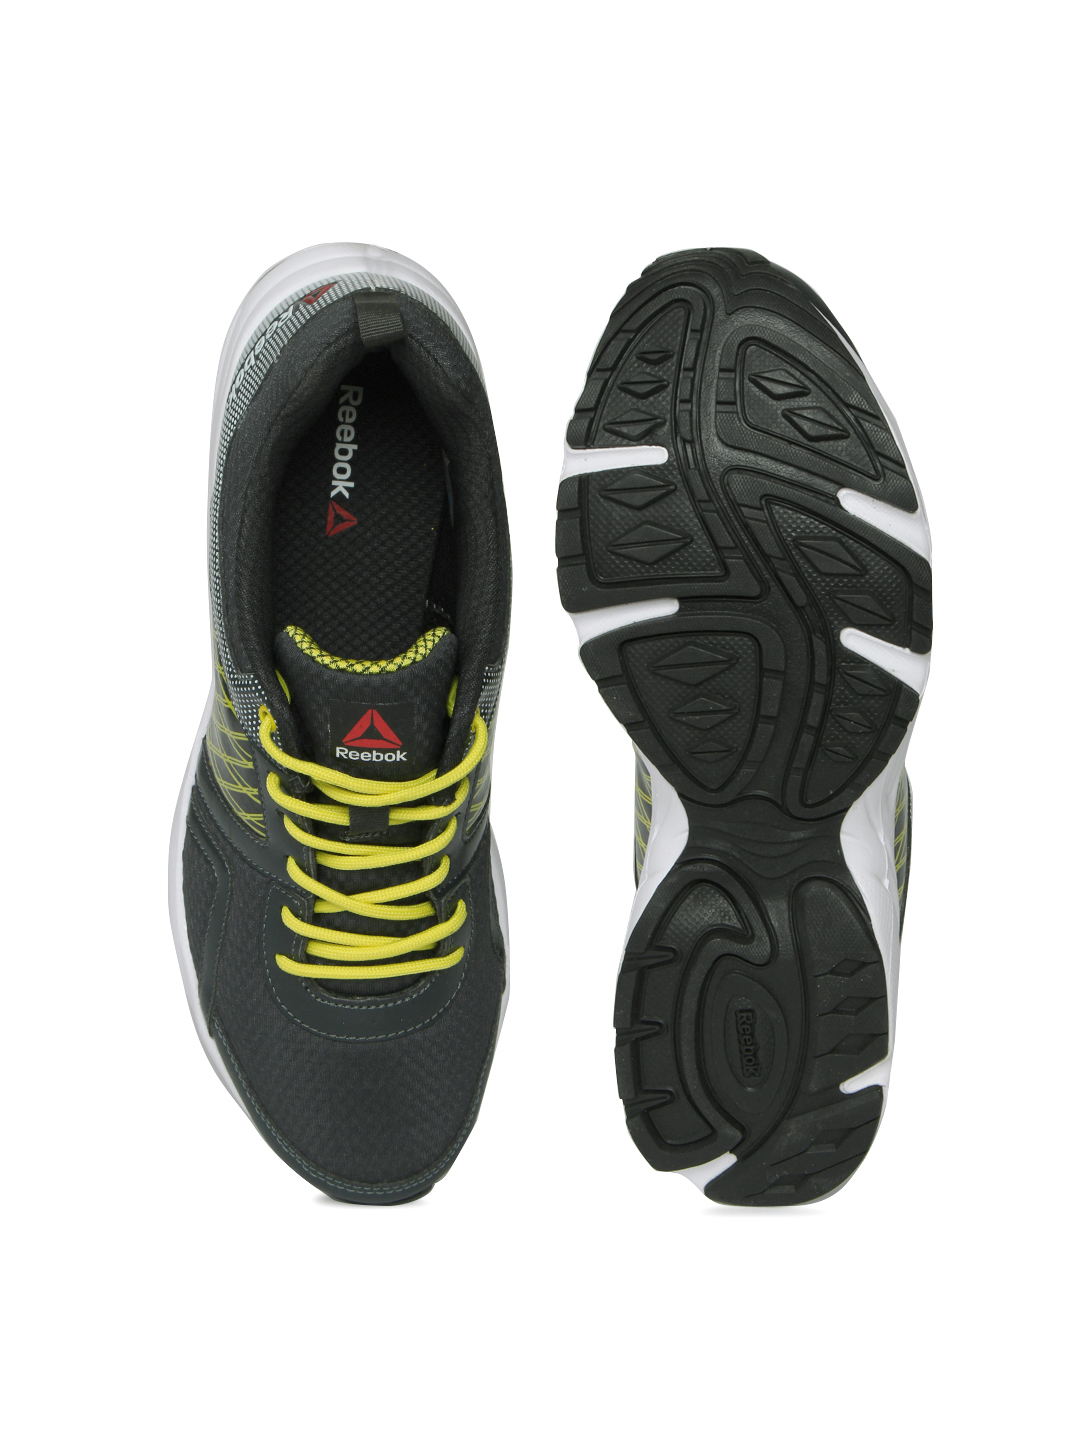 REEBOK Men Charcoal Grey Smooth Flyer Running Shoes image 1